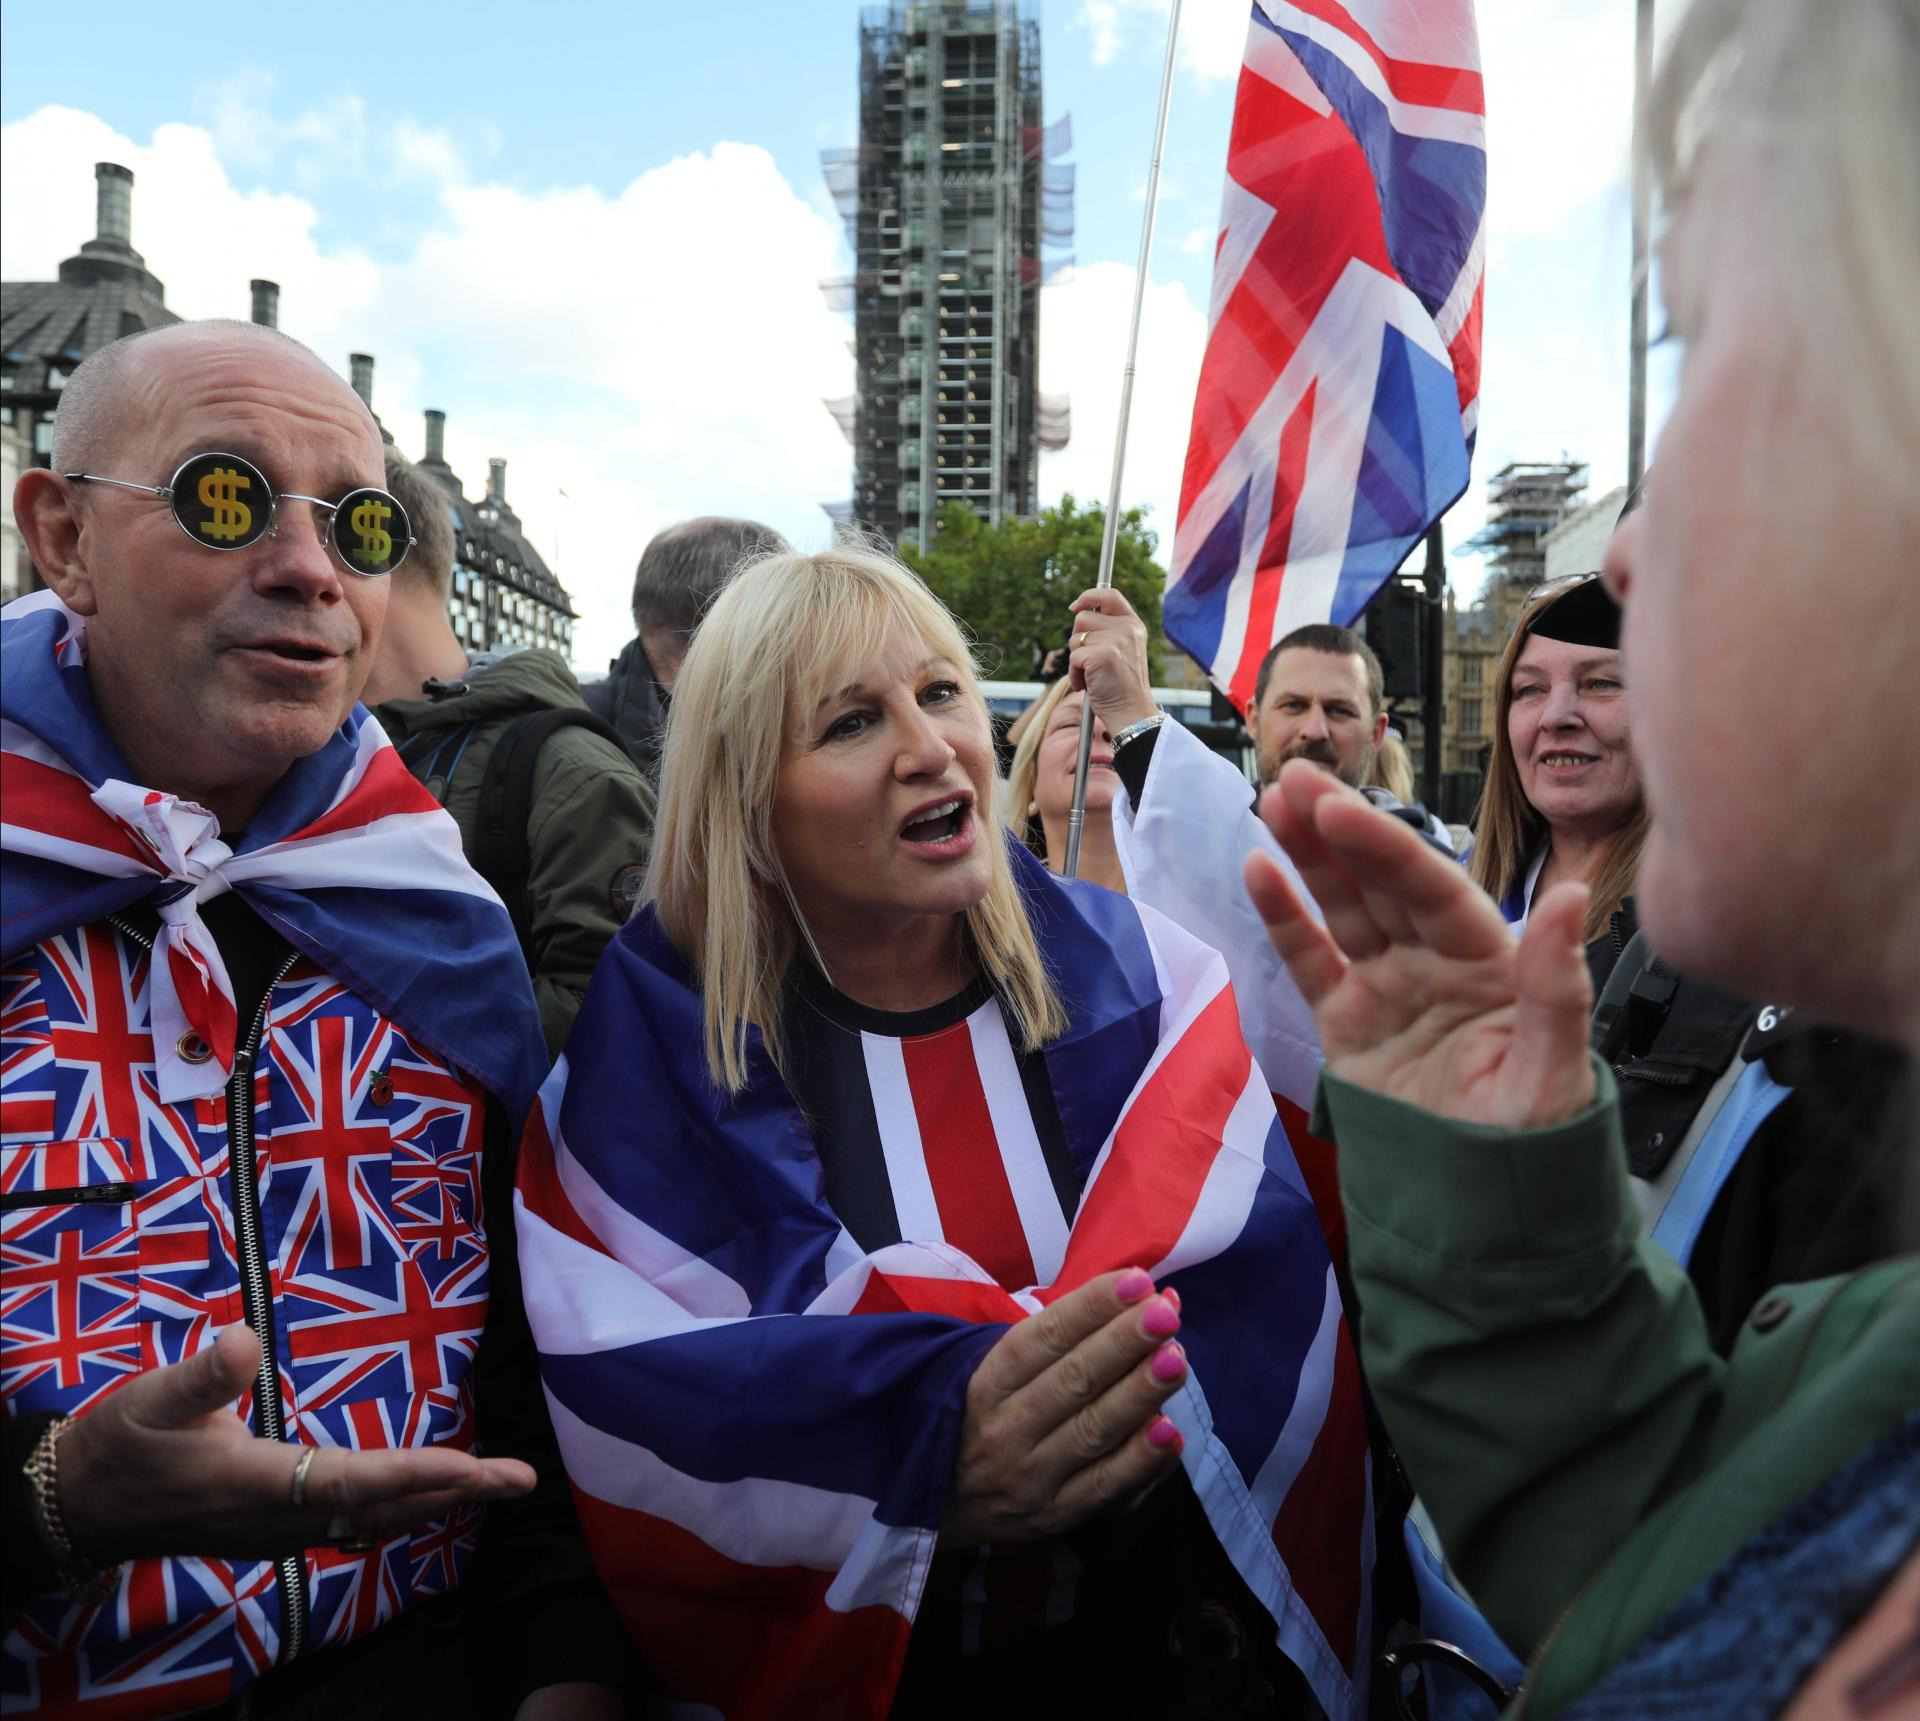 Pro-Brexit demonstrators speak with anti-Brexit demonstrators in Parliament Square in central London. Photo: AFP